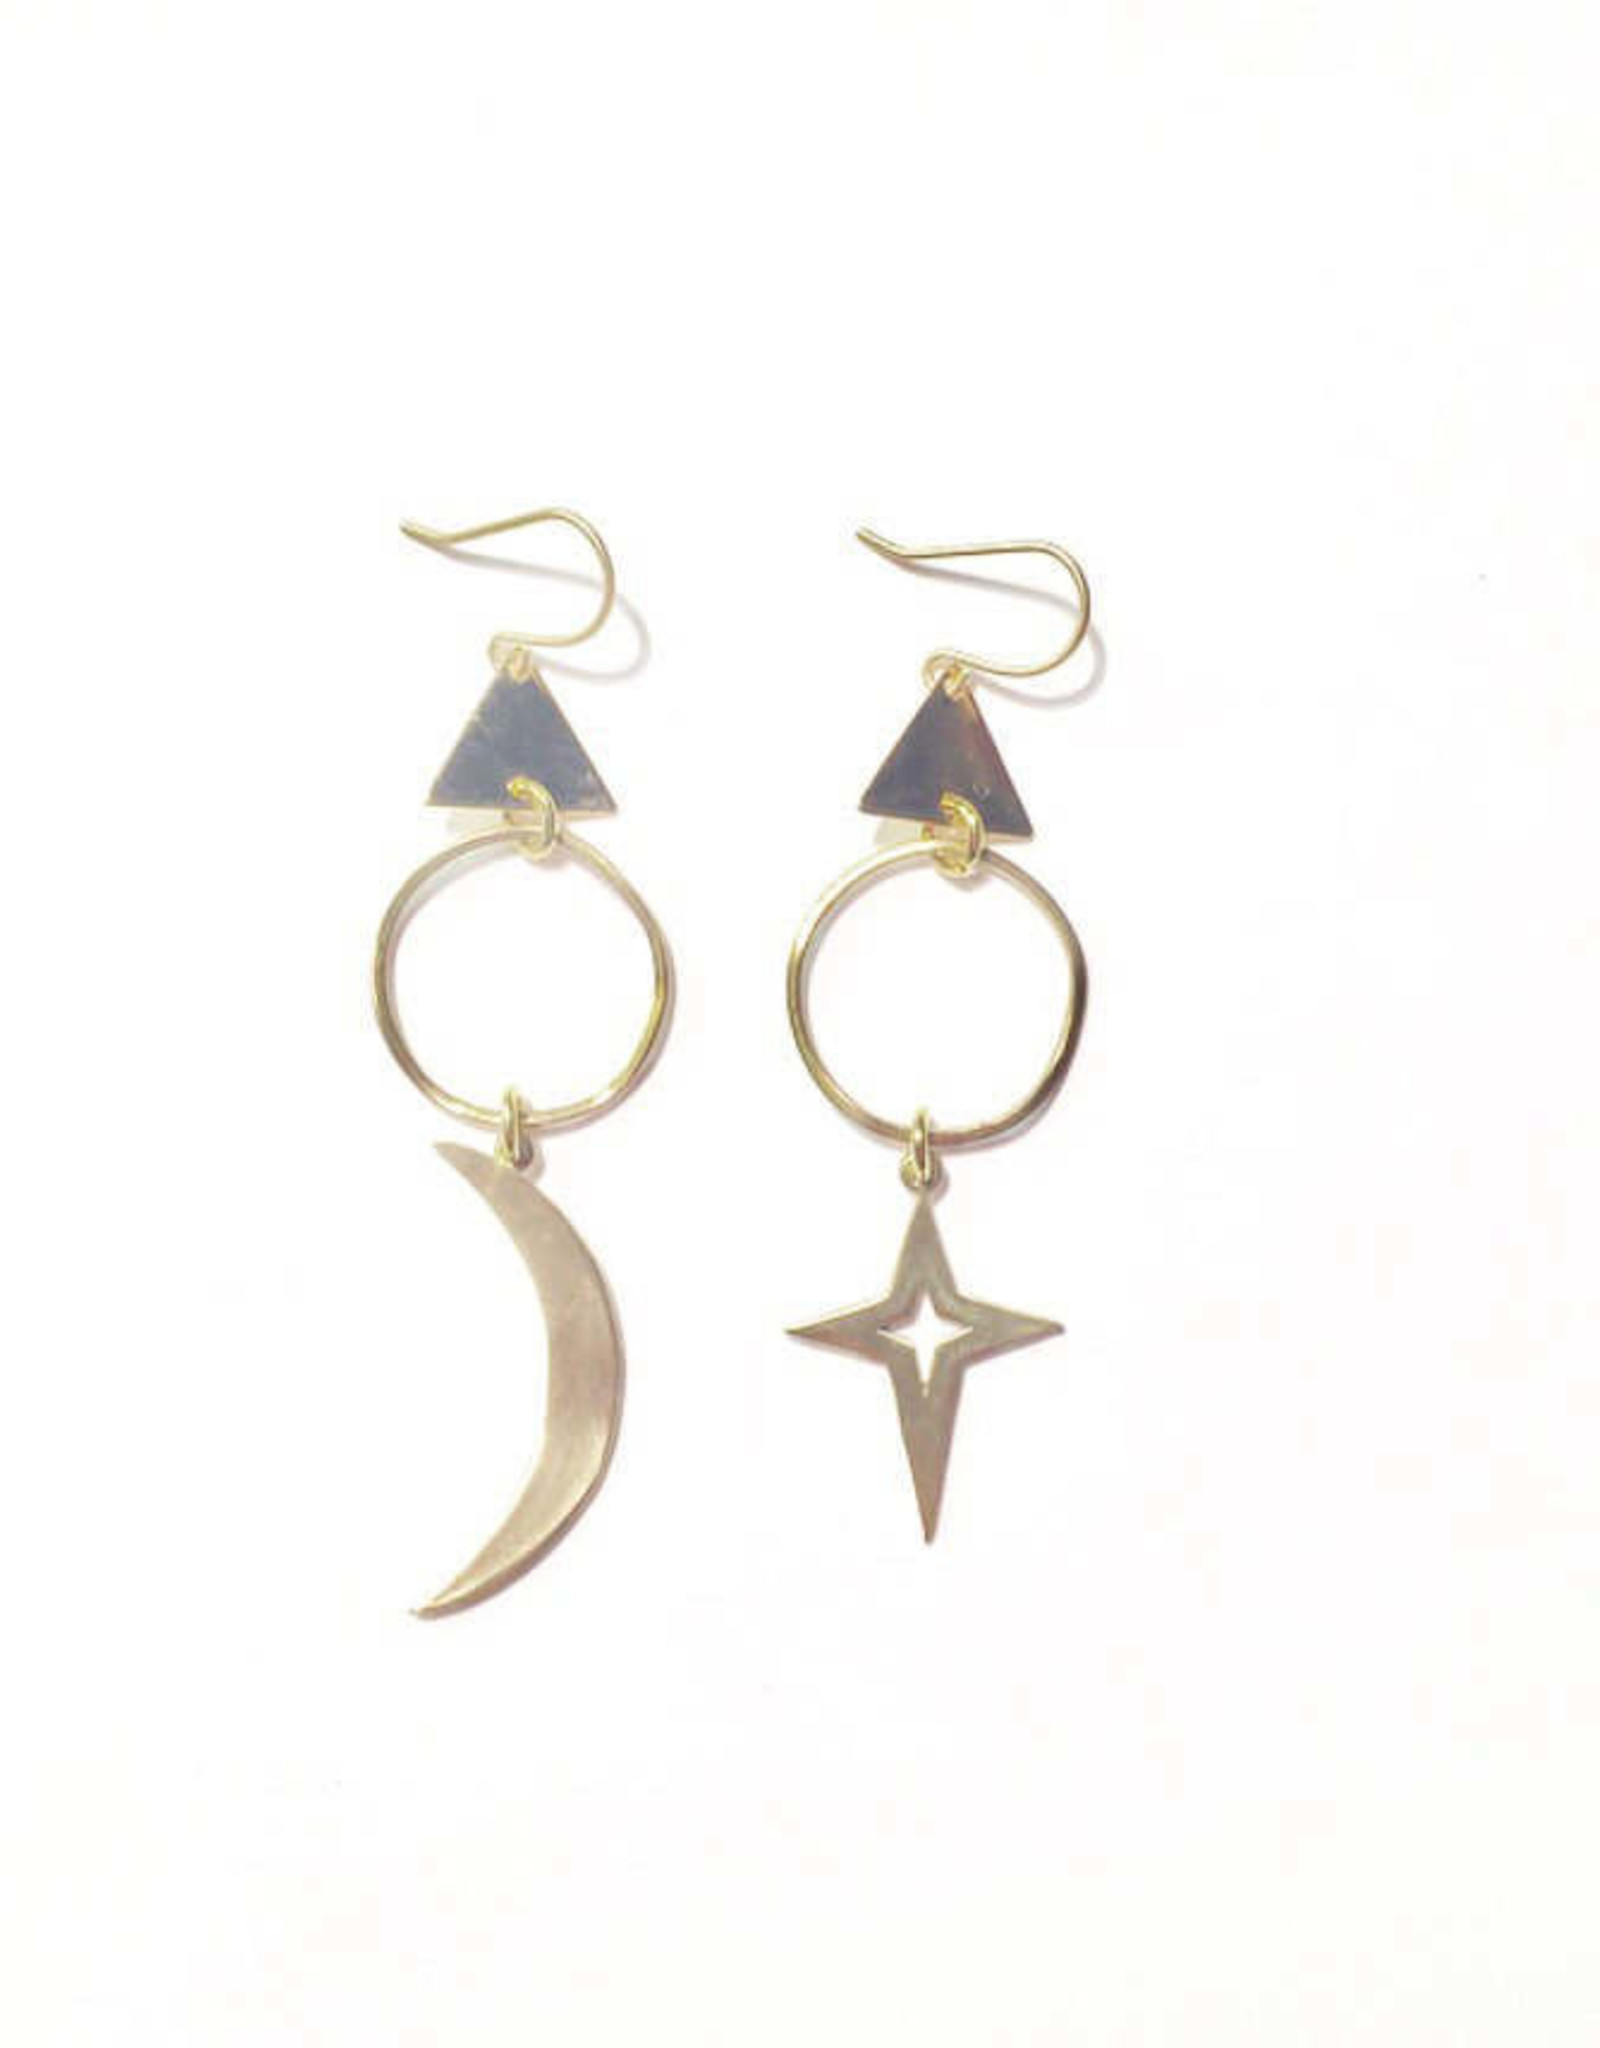 Flatwoods Fawn Moon and Star Witchy Celestial Mismatched Earrings With Gold Triangles